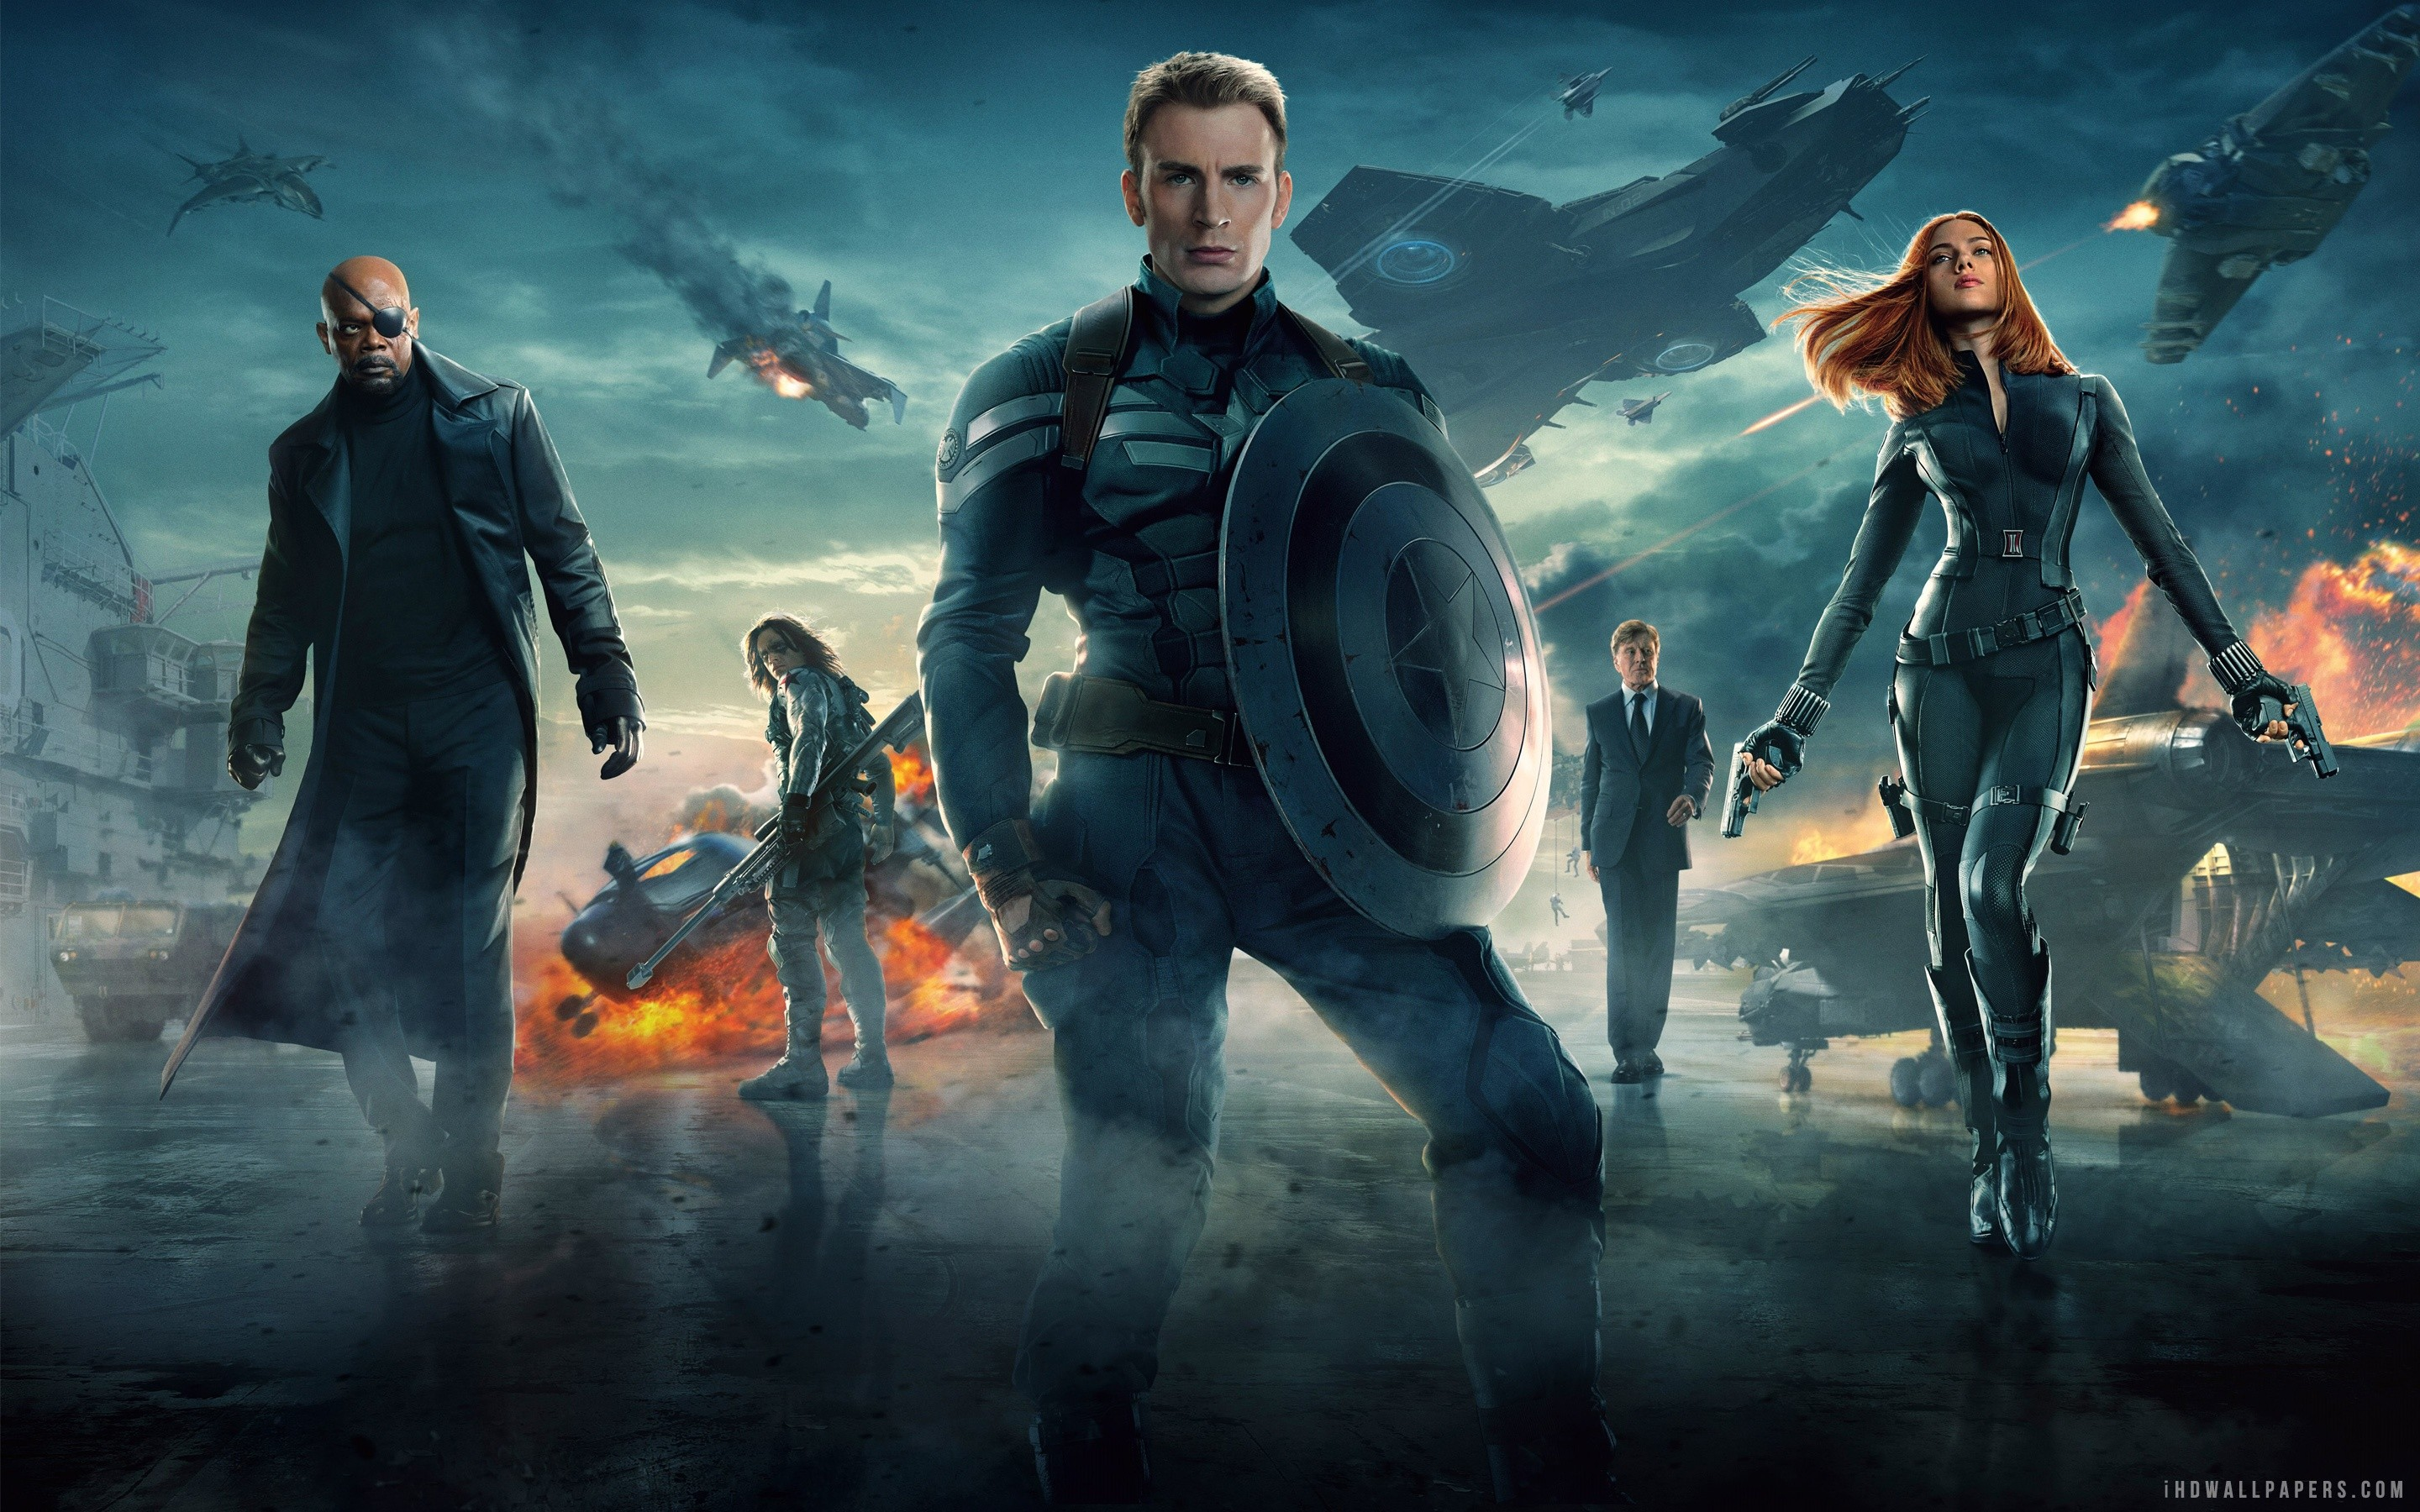 2880x1800 Captain America images Captain America: Winter Soldier HD wallpaper and  background photos